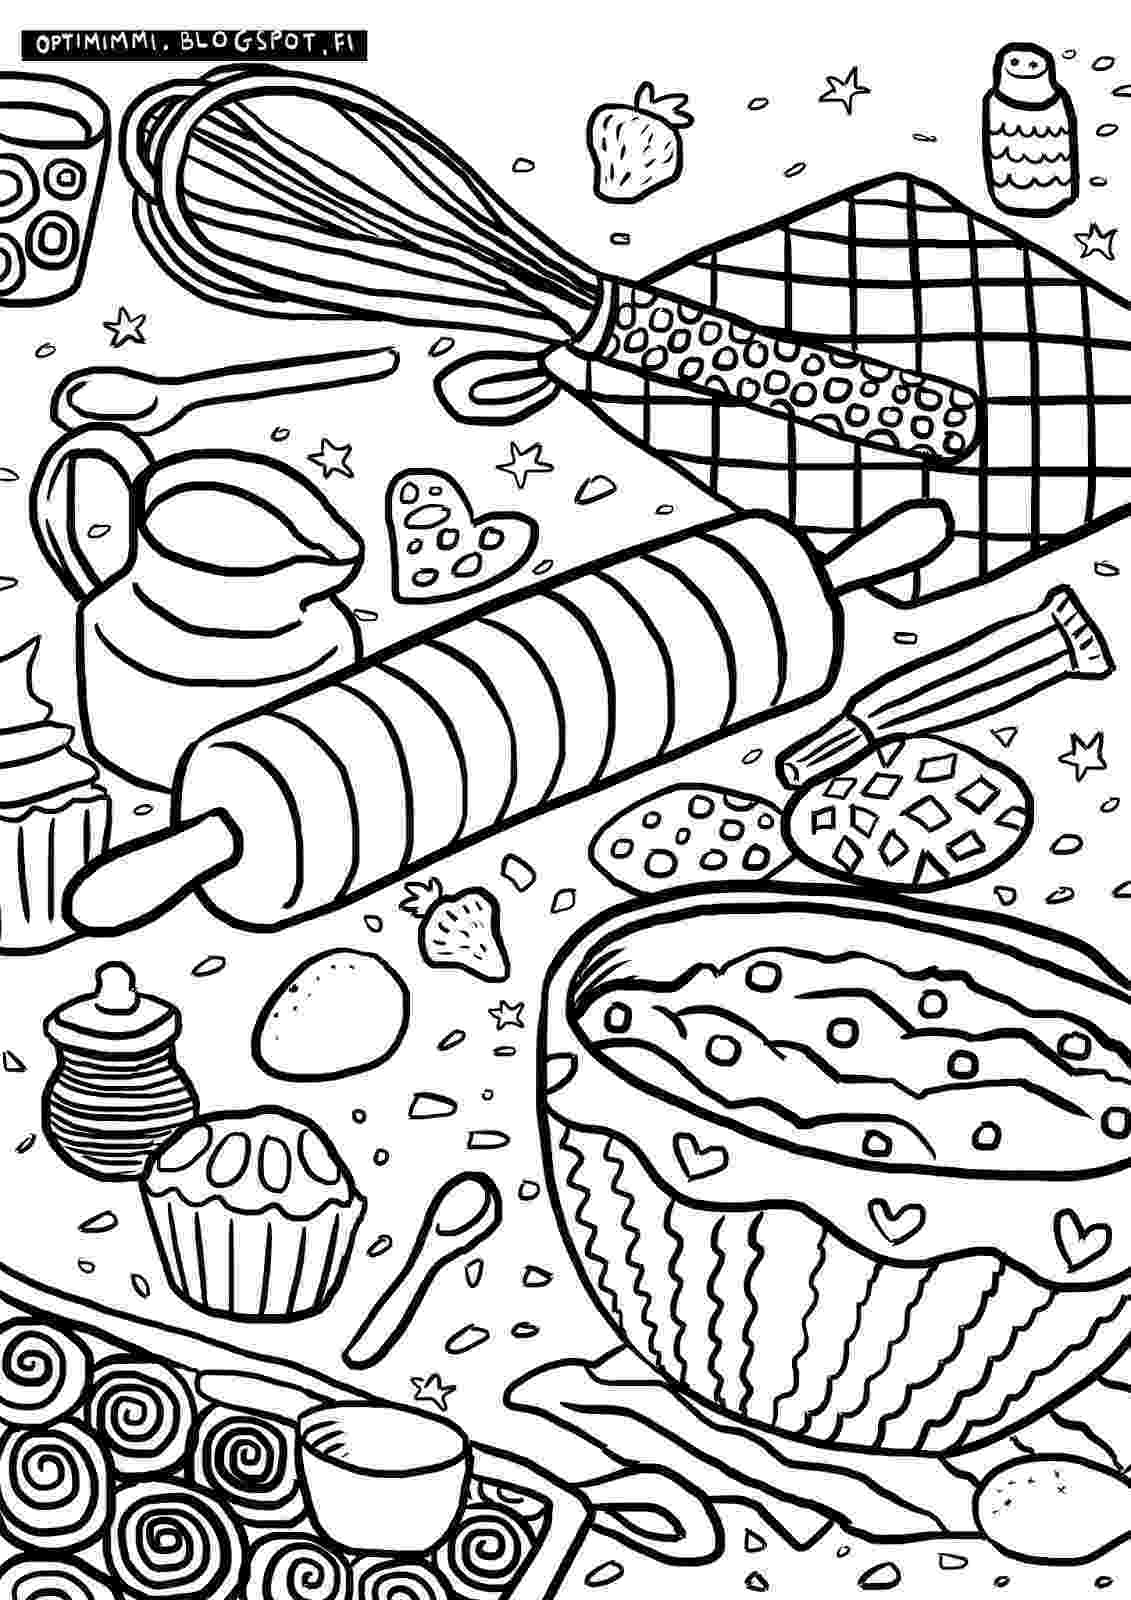 baking coloring pages optimimmi 2017 coloring pages 2017 värityskuvat pages coloring baking